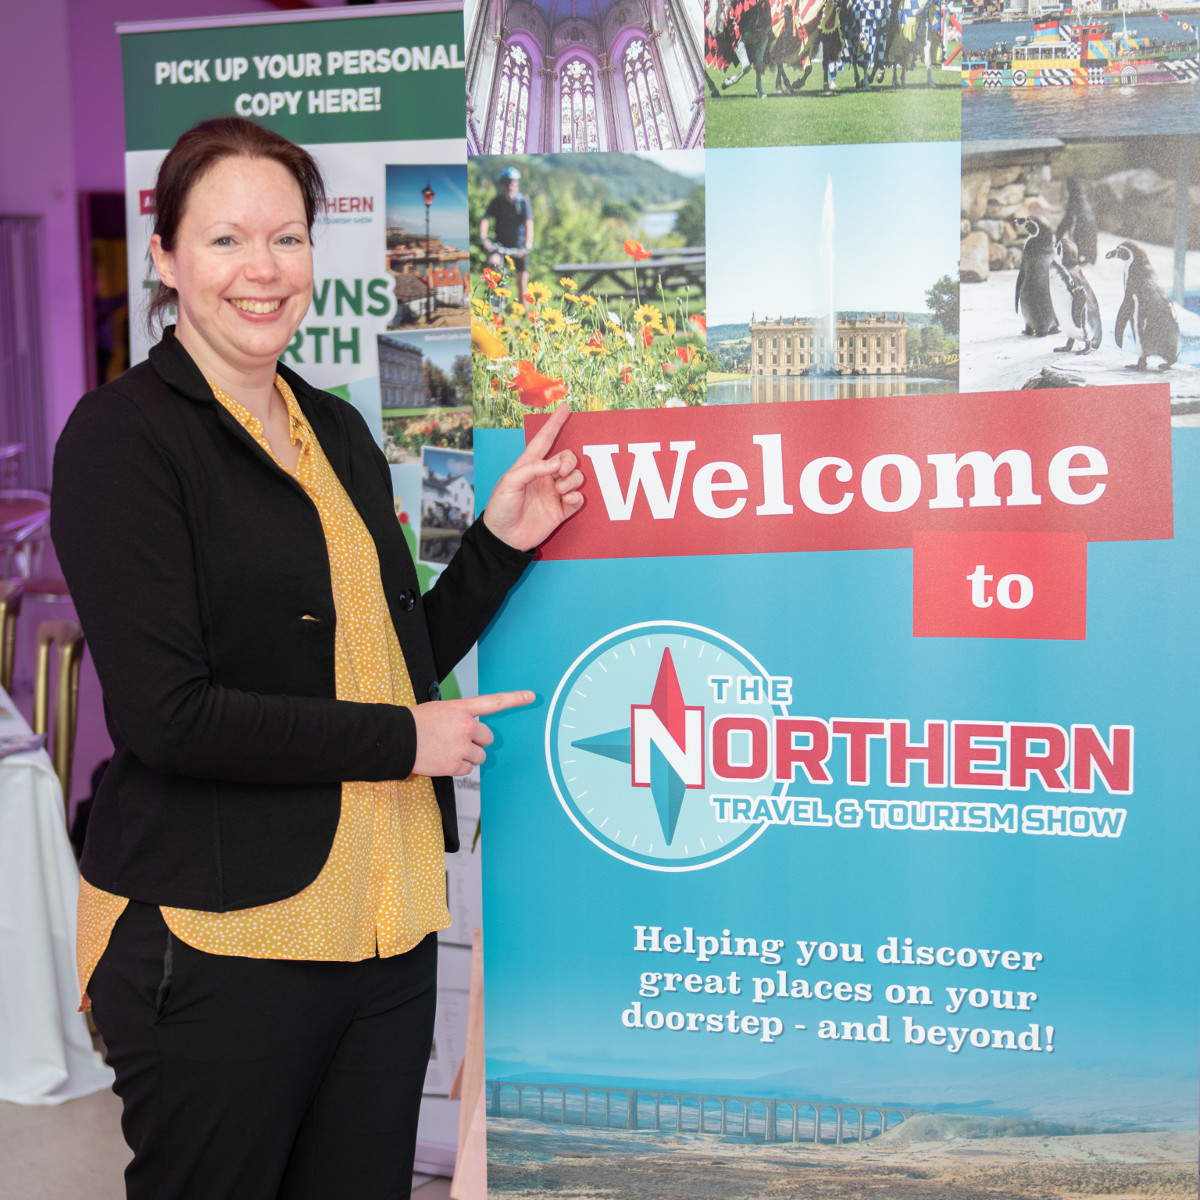 Anoek Petit at the Northern Travel & Tourism Show